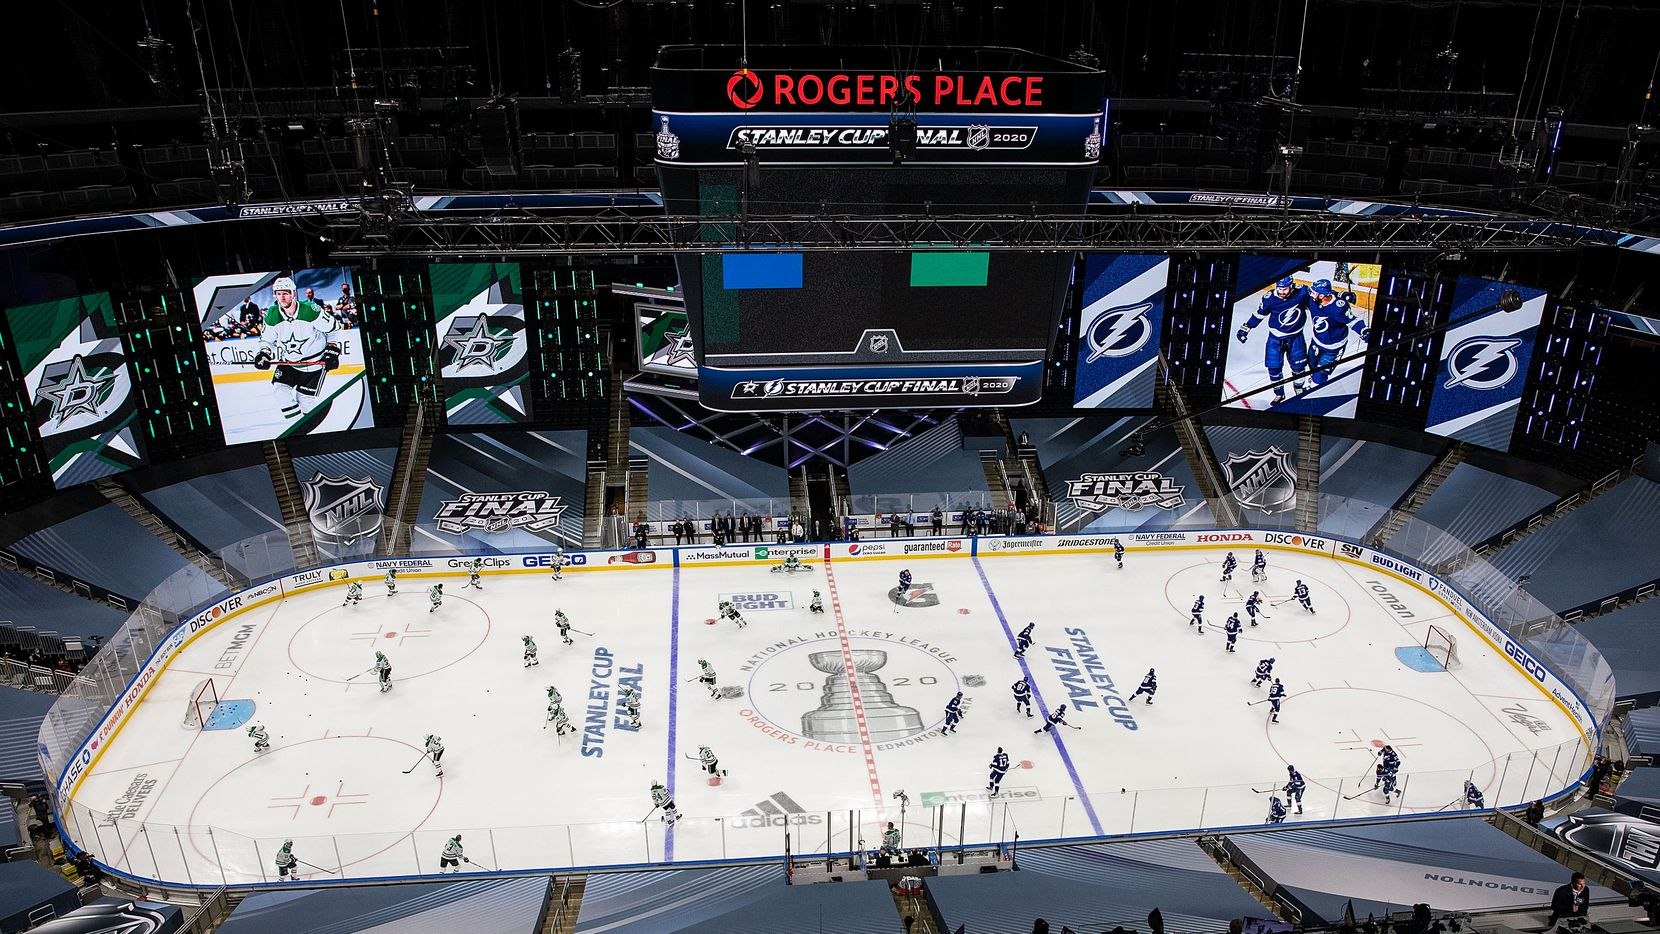 The Dallas Stars and the Tampa Bay Lightning warm up during Game One of the Stanley Cup Final at Rogers Place in Edmonton, Alberta, Canada on Saturday, September 19, 2020. (Codie McLachlan/Special Contributor)